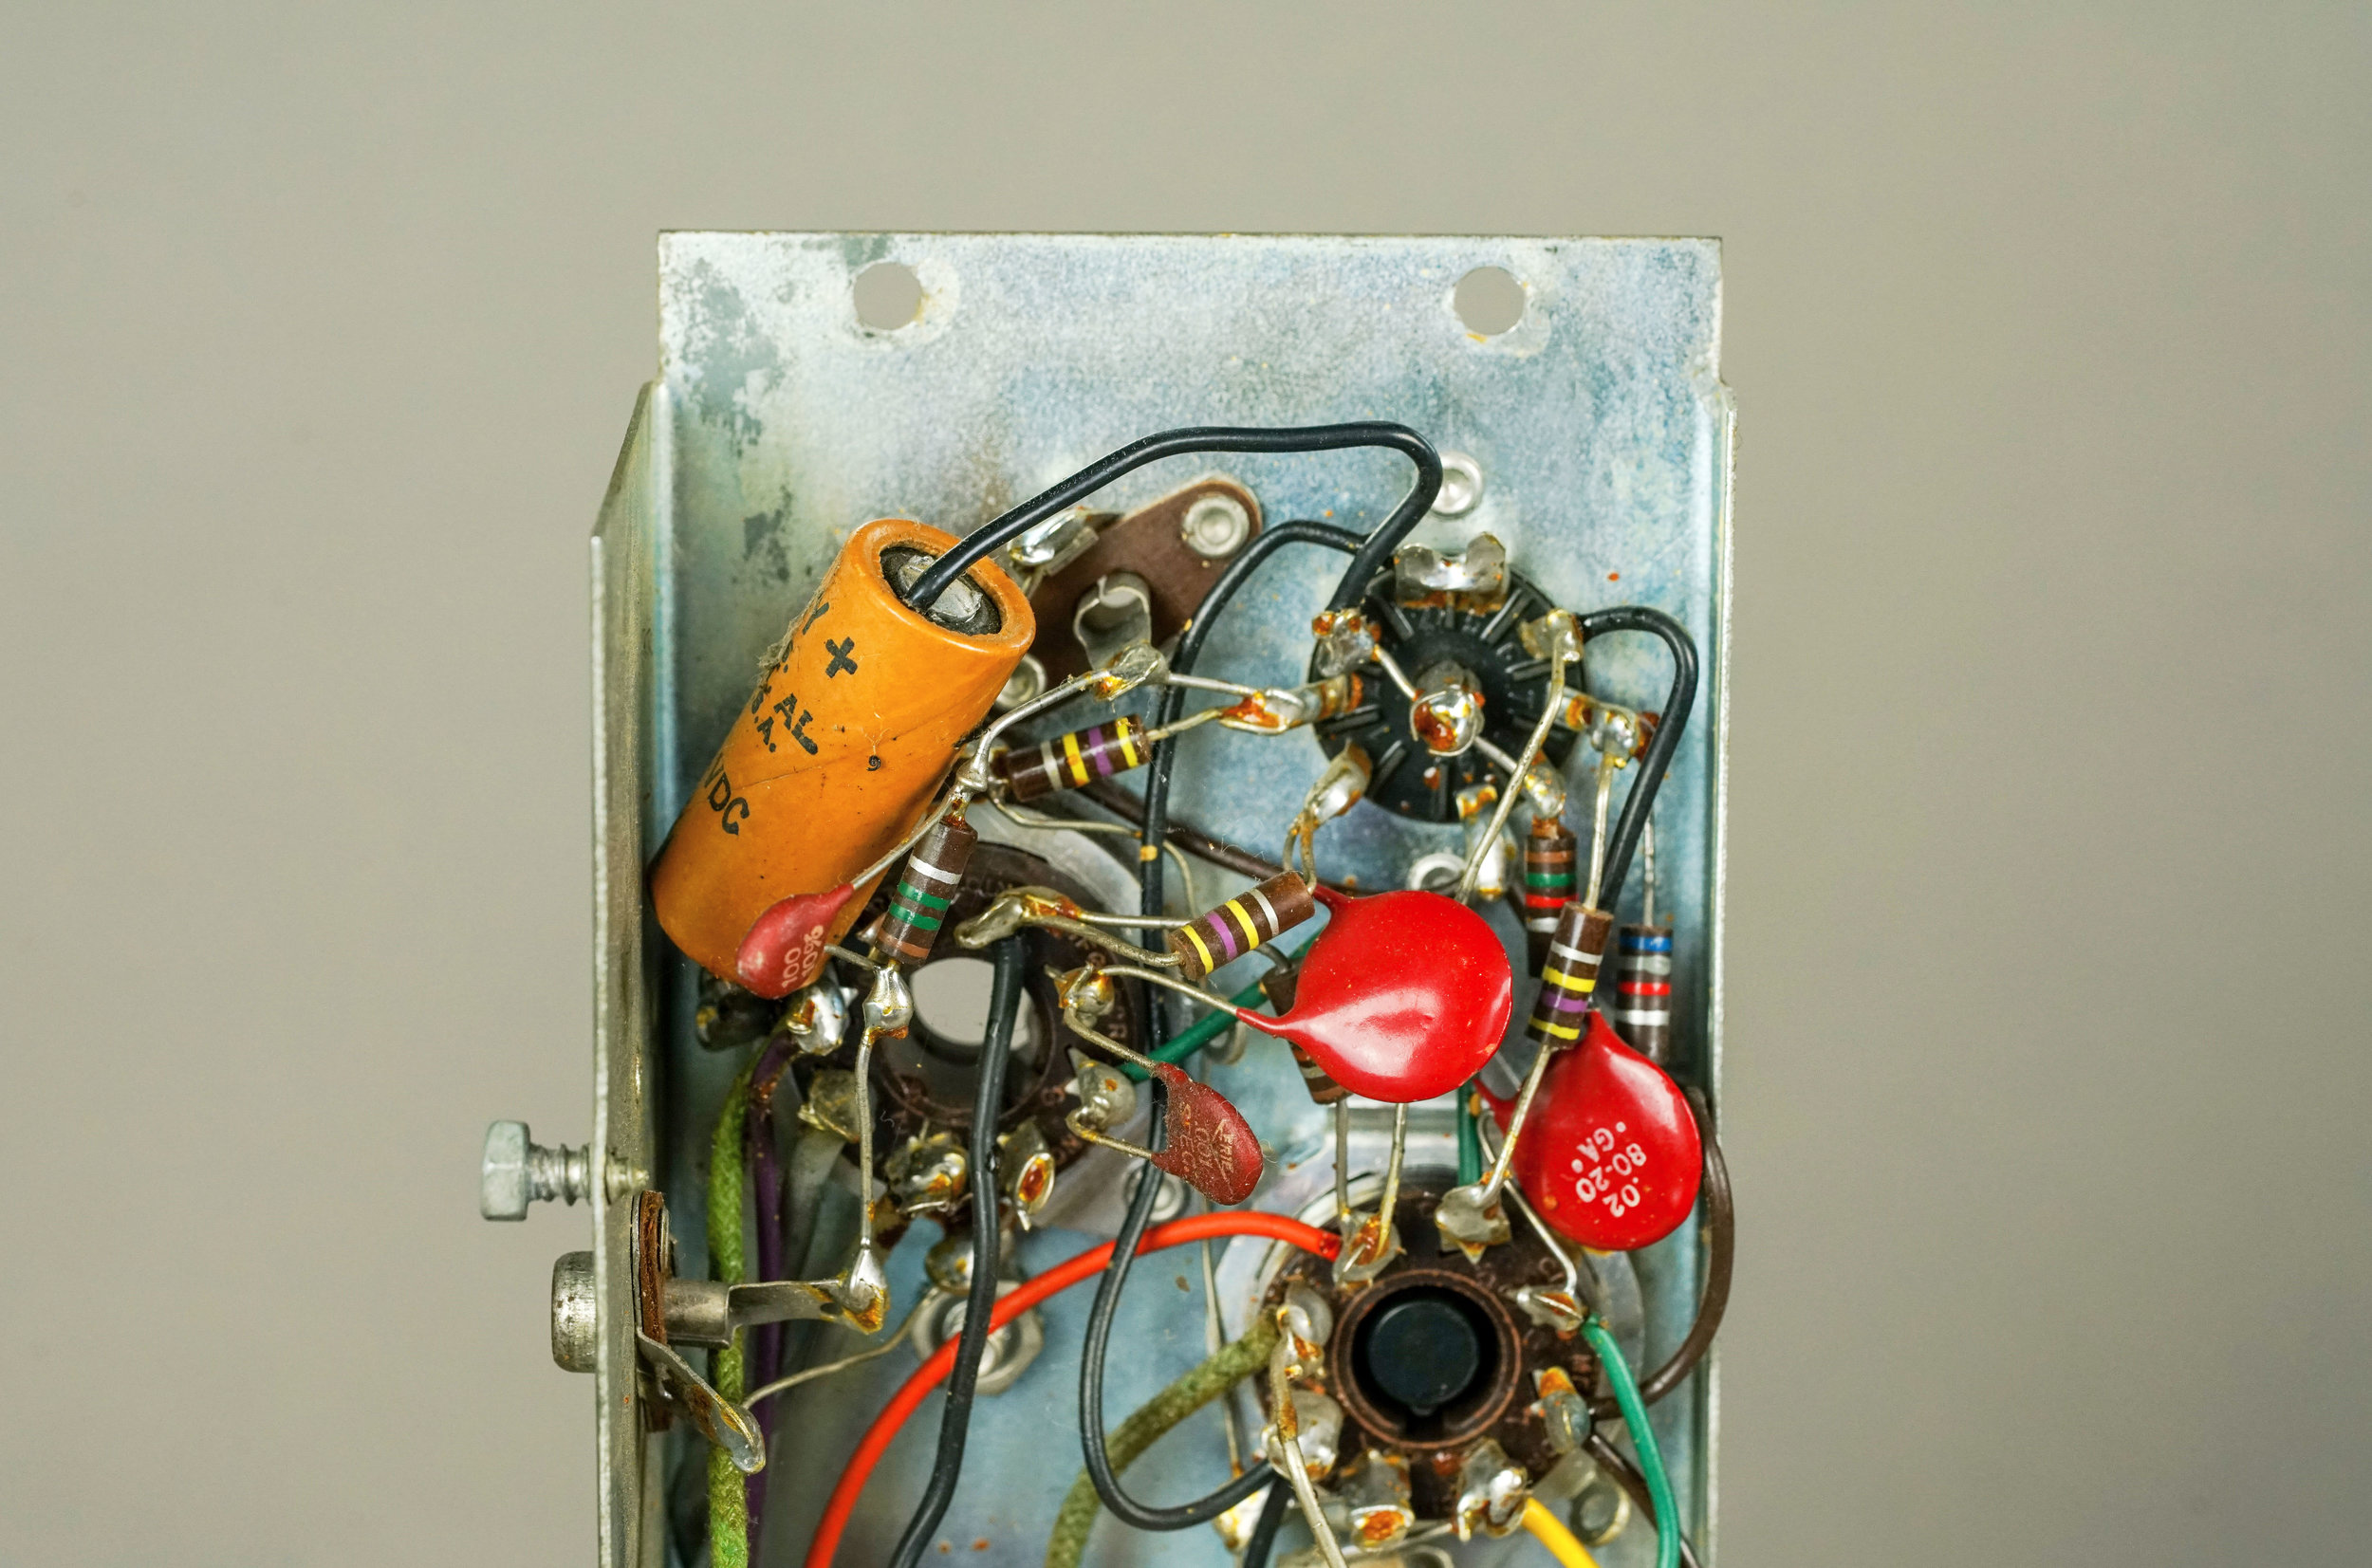 In this Wurlitzer 700 amplifier, the heater wires are black and brown. In this photo, the black wire starts at pins 4 and 5 of the 12AX7, while the brown wire starts at pin 9. This is not an optimal way to wire heaters, because the circuit is not center-tapped and the wires are not twisted.